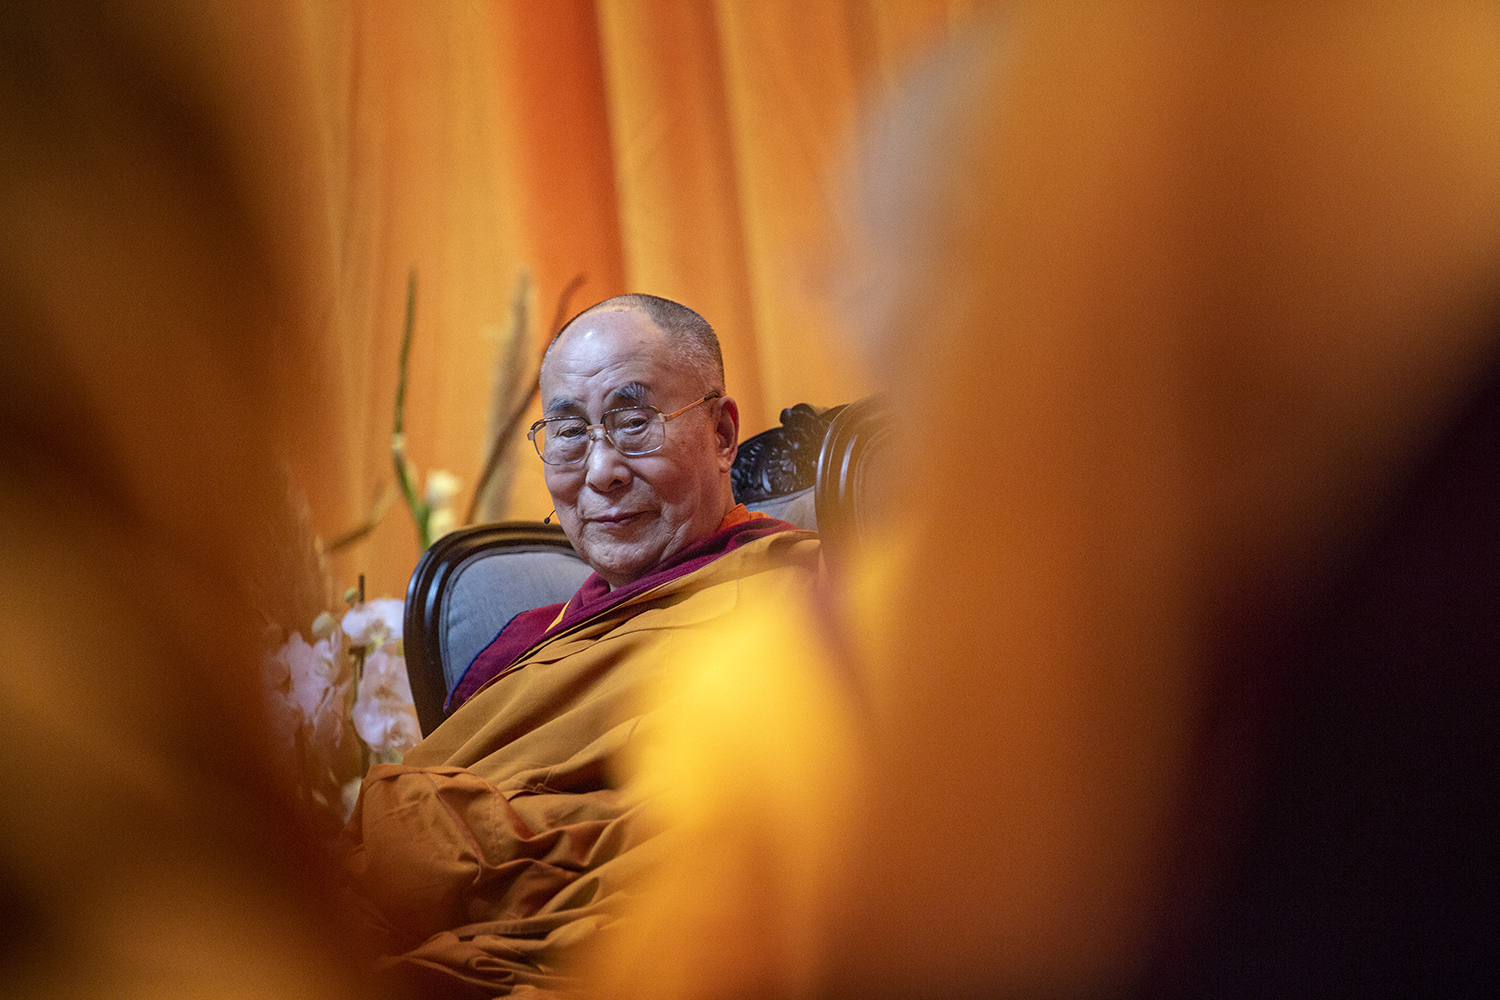 Dalai Lama visits the Netherlands 2018